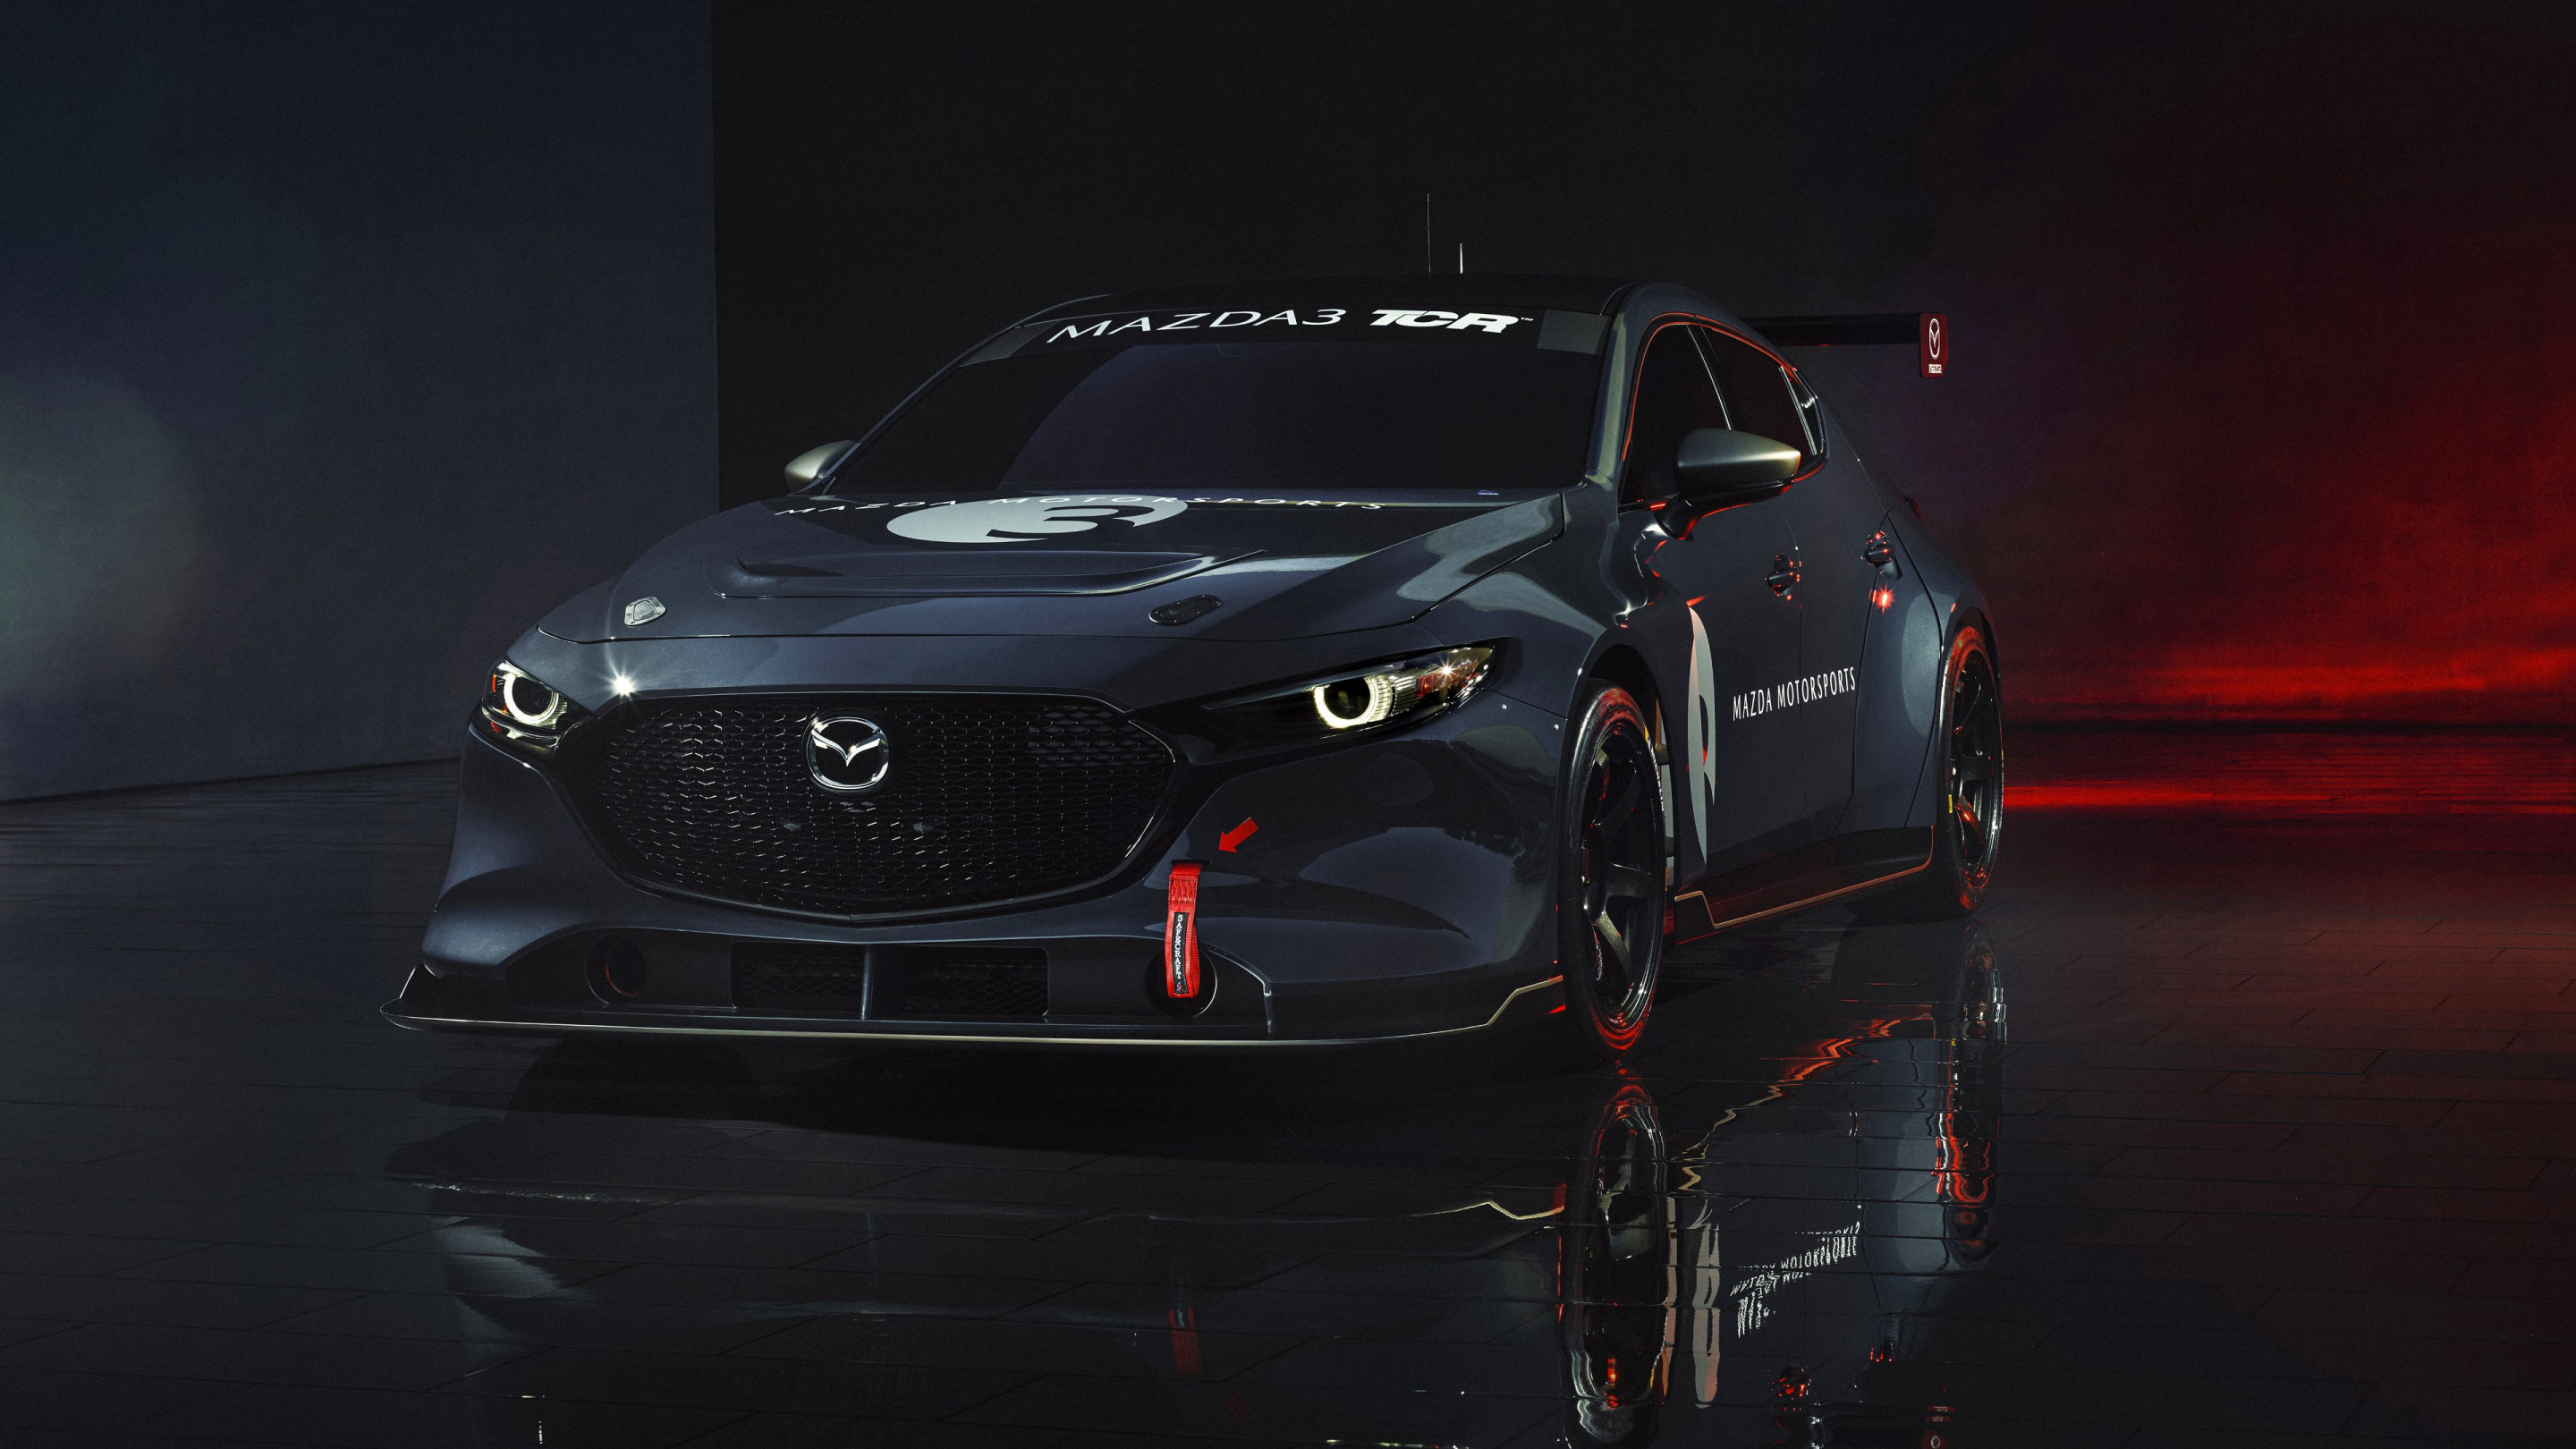 Download wallpaper: Mazda 3 TCR 2880x1620